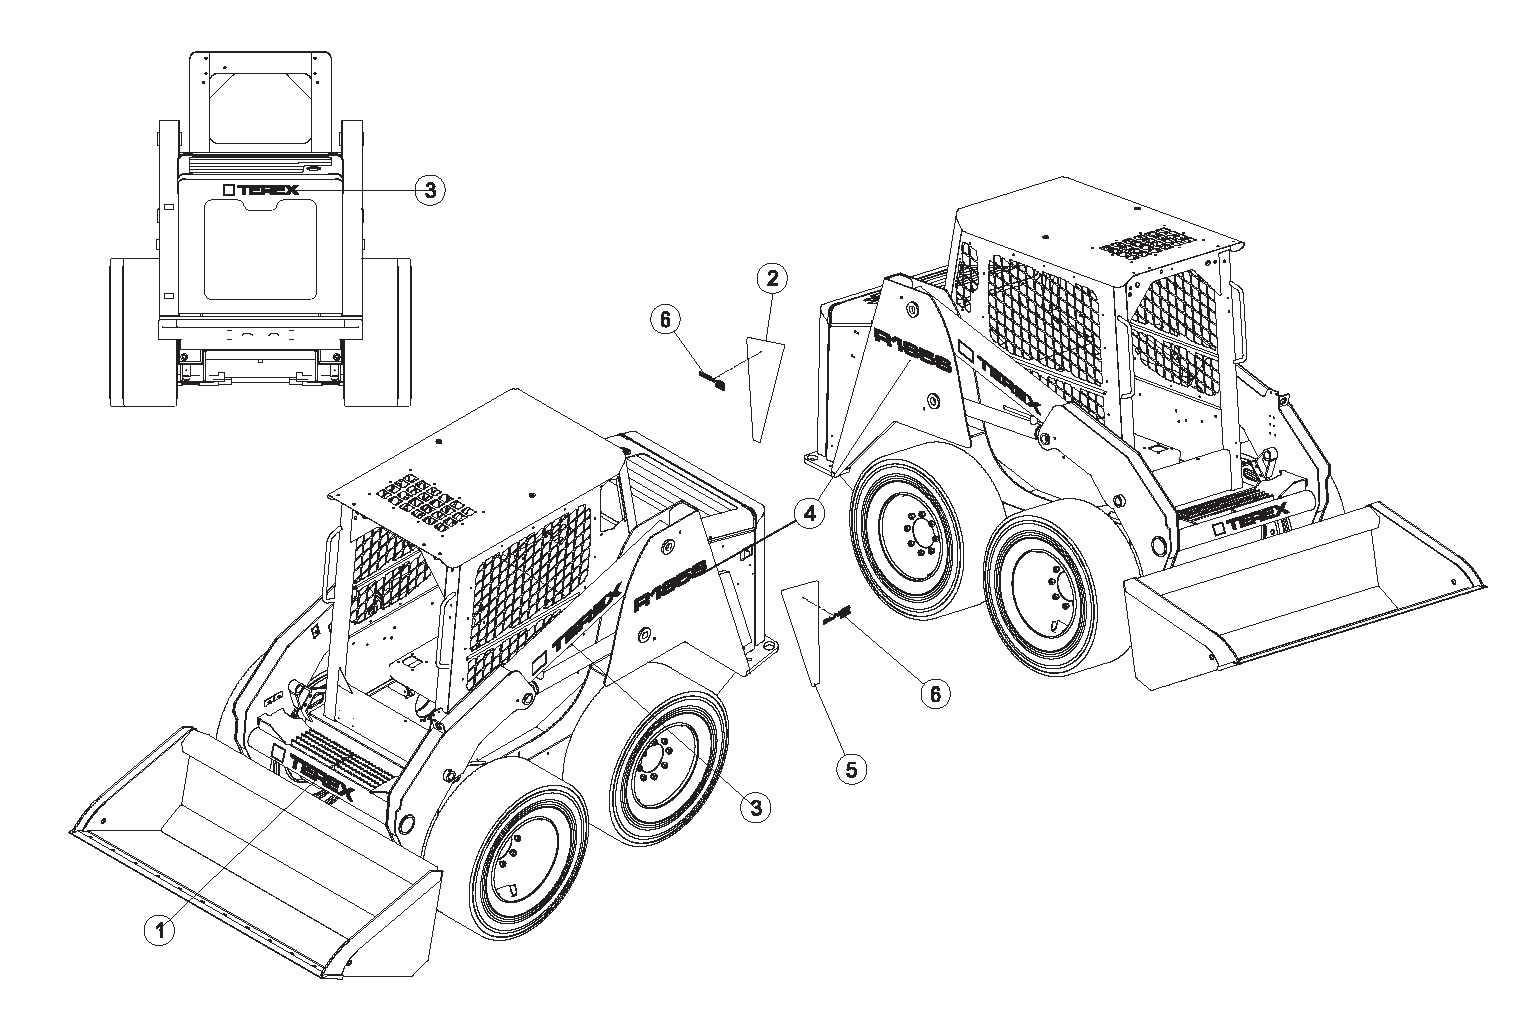 Diagram 9-5A Terex Graphics